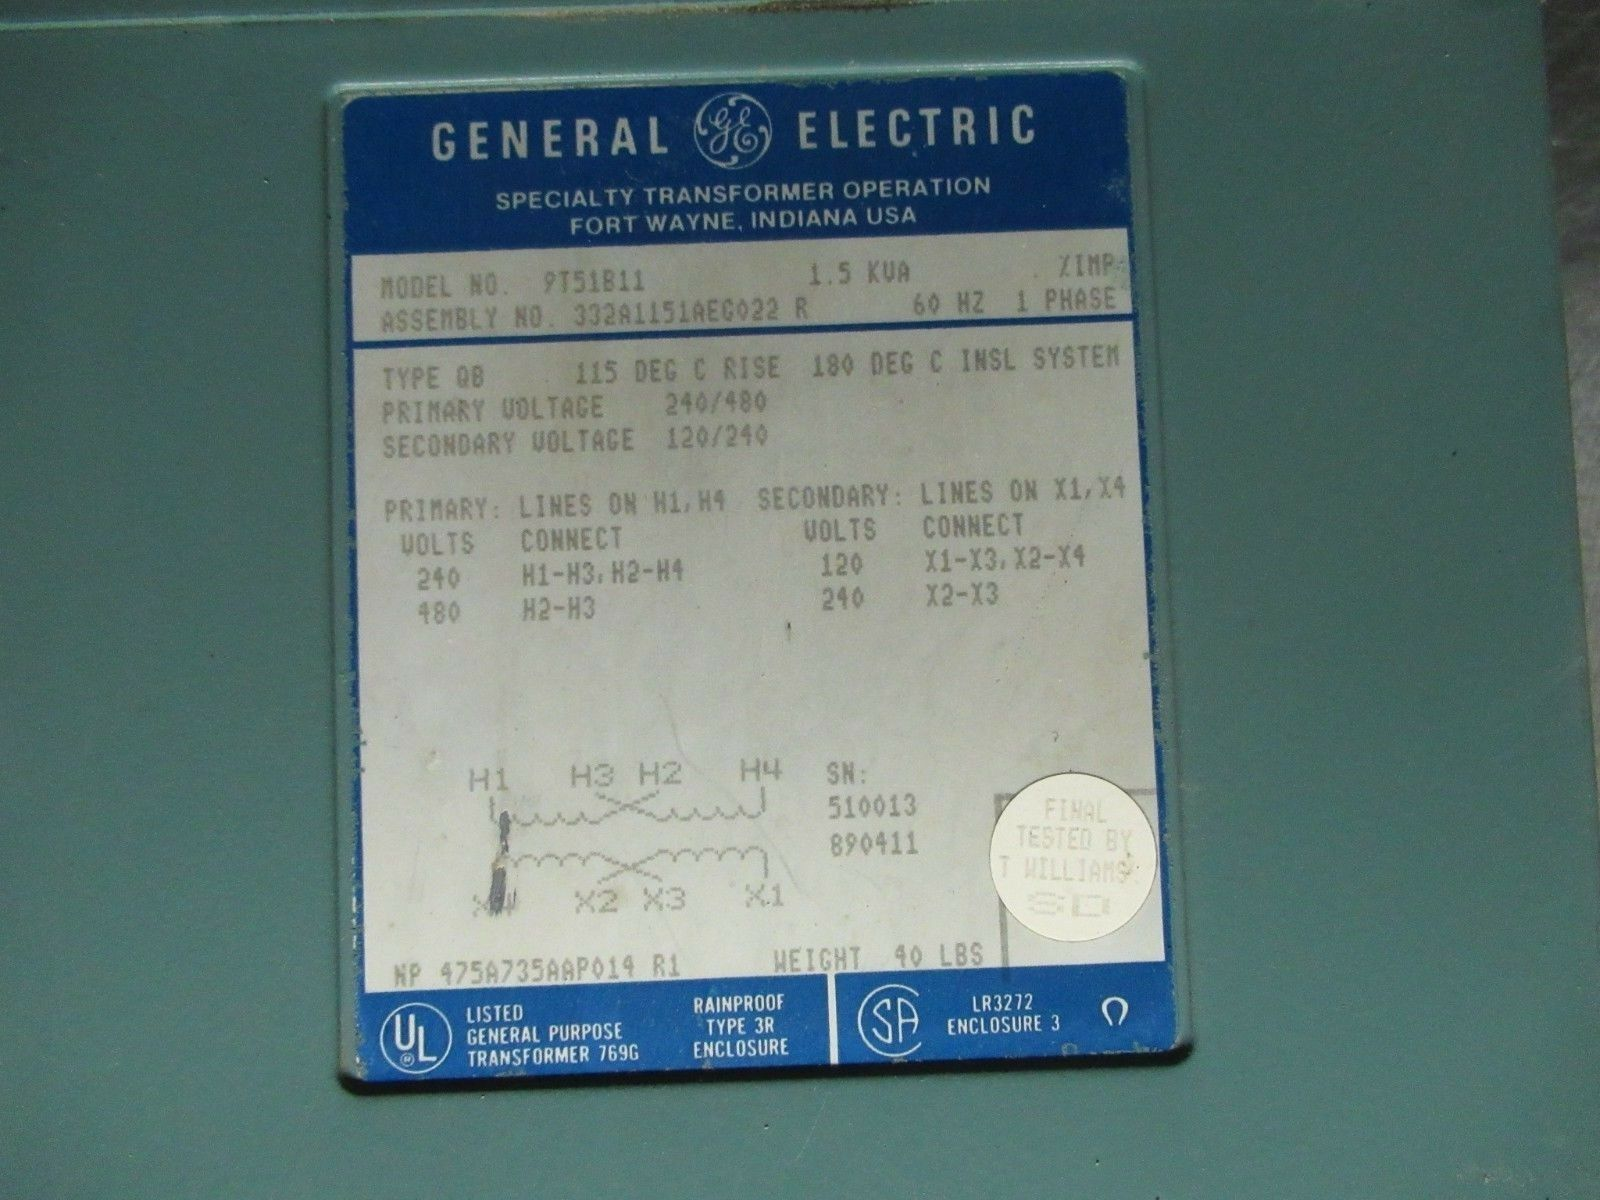 General Electric Type QB Transformer GE 1.5kva Ph1 9T51B11 on